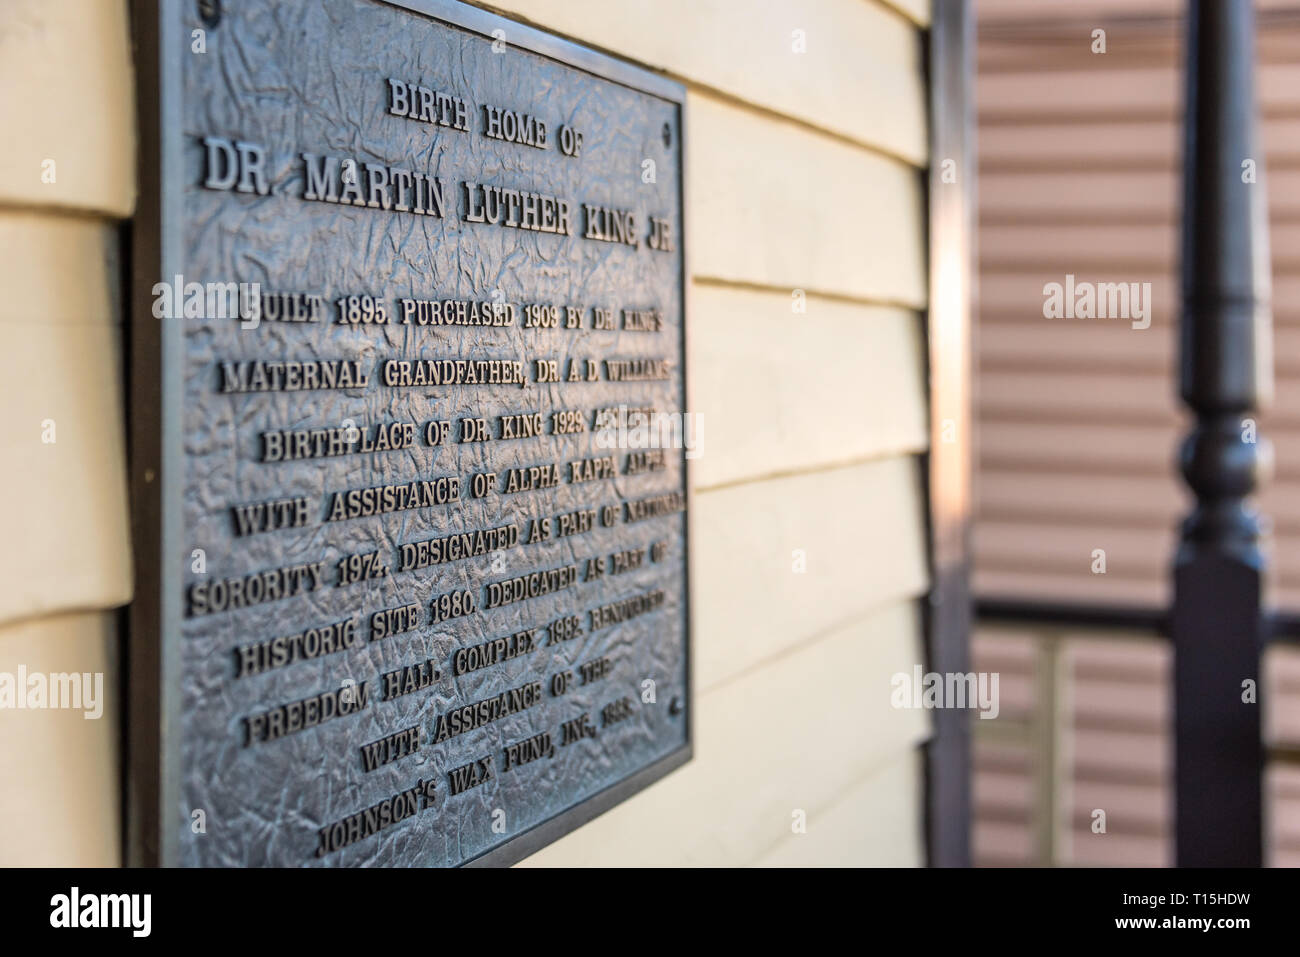 Historical plaque at the birth home of Dr. Martin Luther King, Jr. in Atlanta, Georgia. (USA) Stock Photo